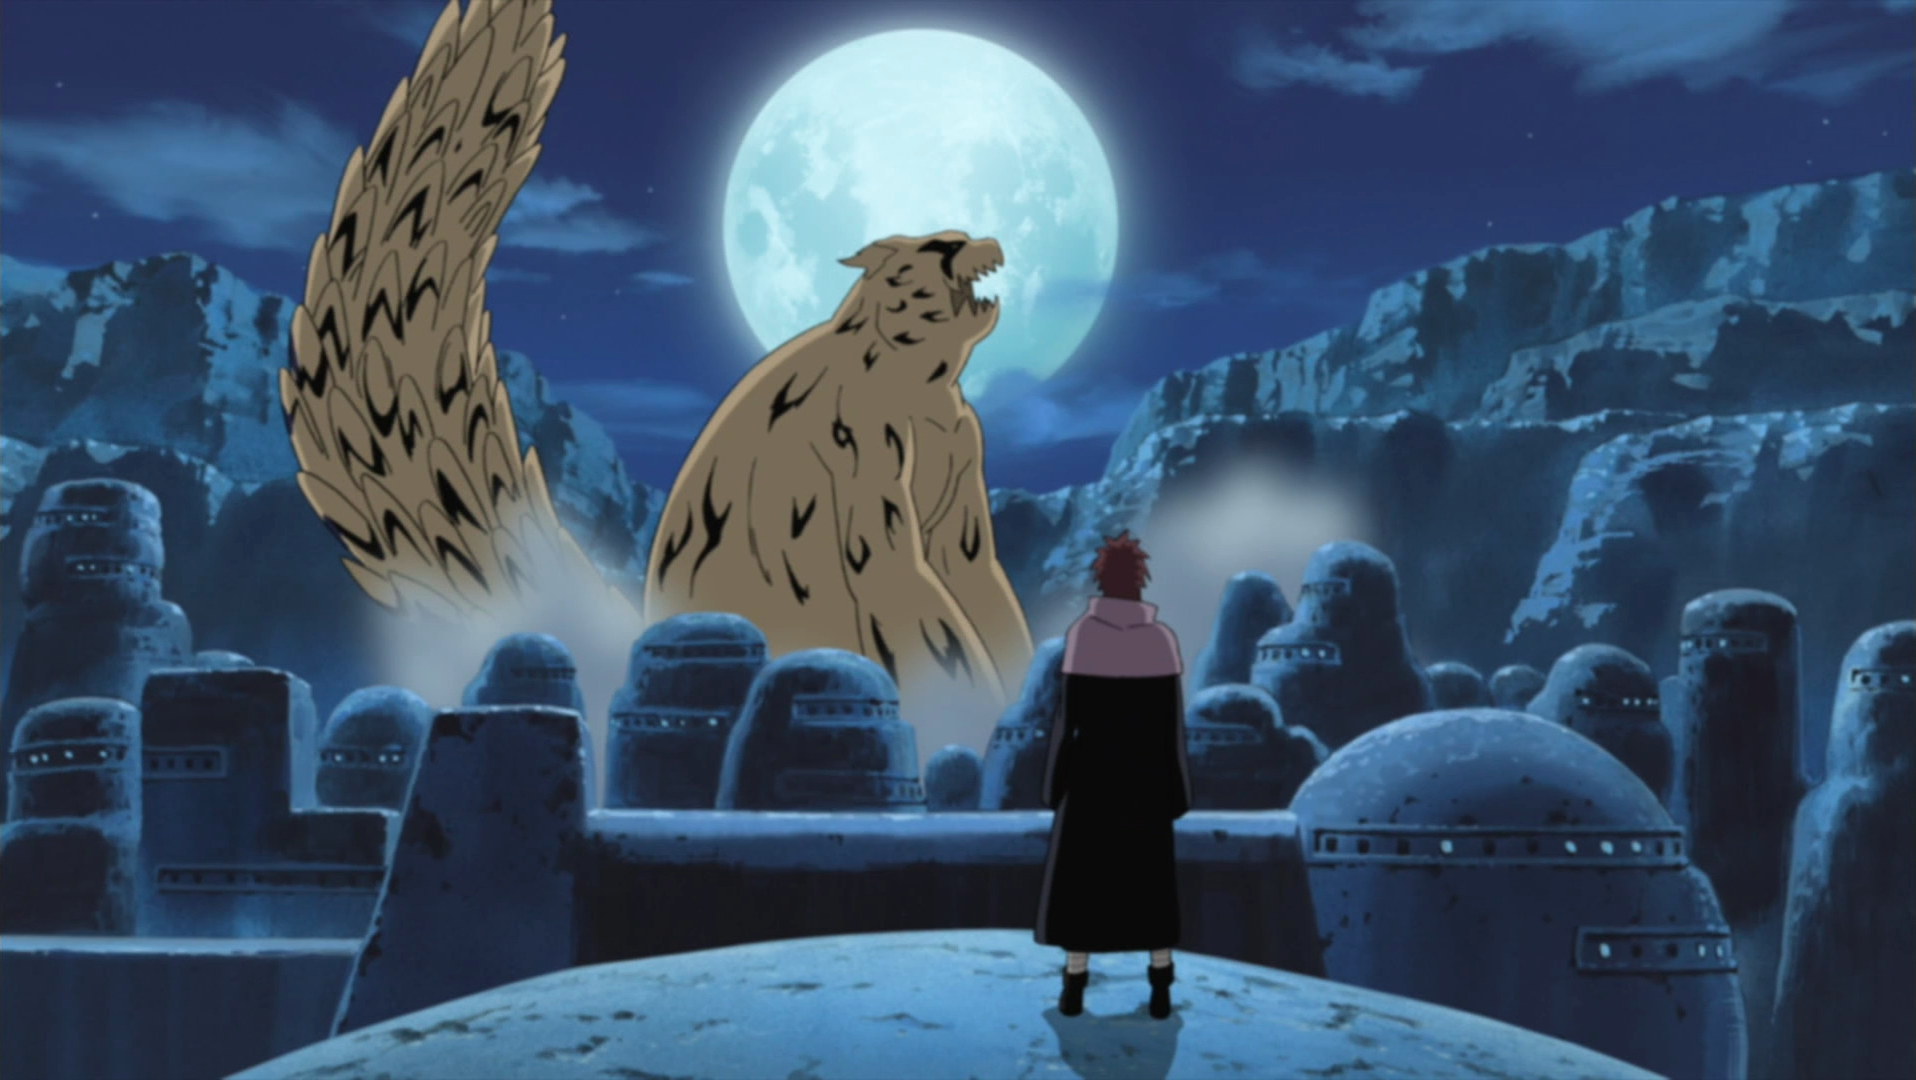 http://img3.wikia.nocookie.net/__cb20130124131237/naruto/images/0/08/Gaara_lost_control.png